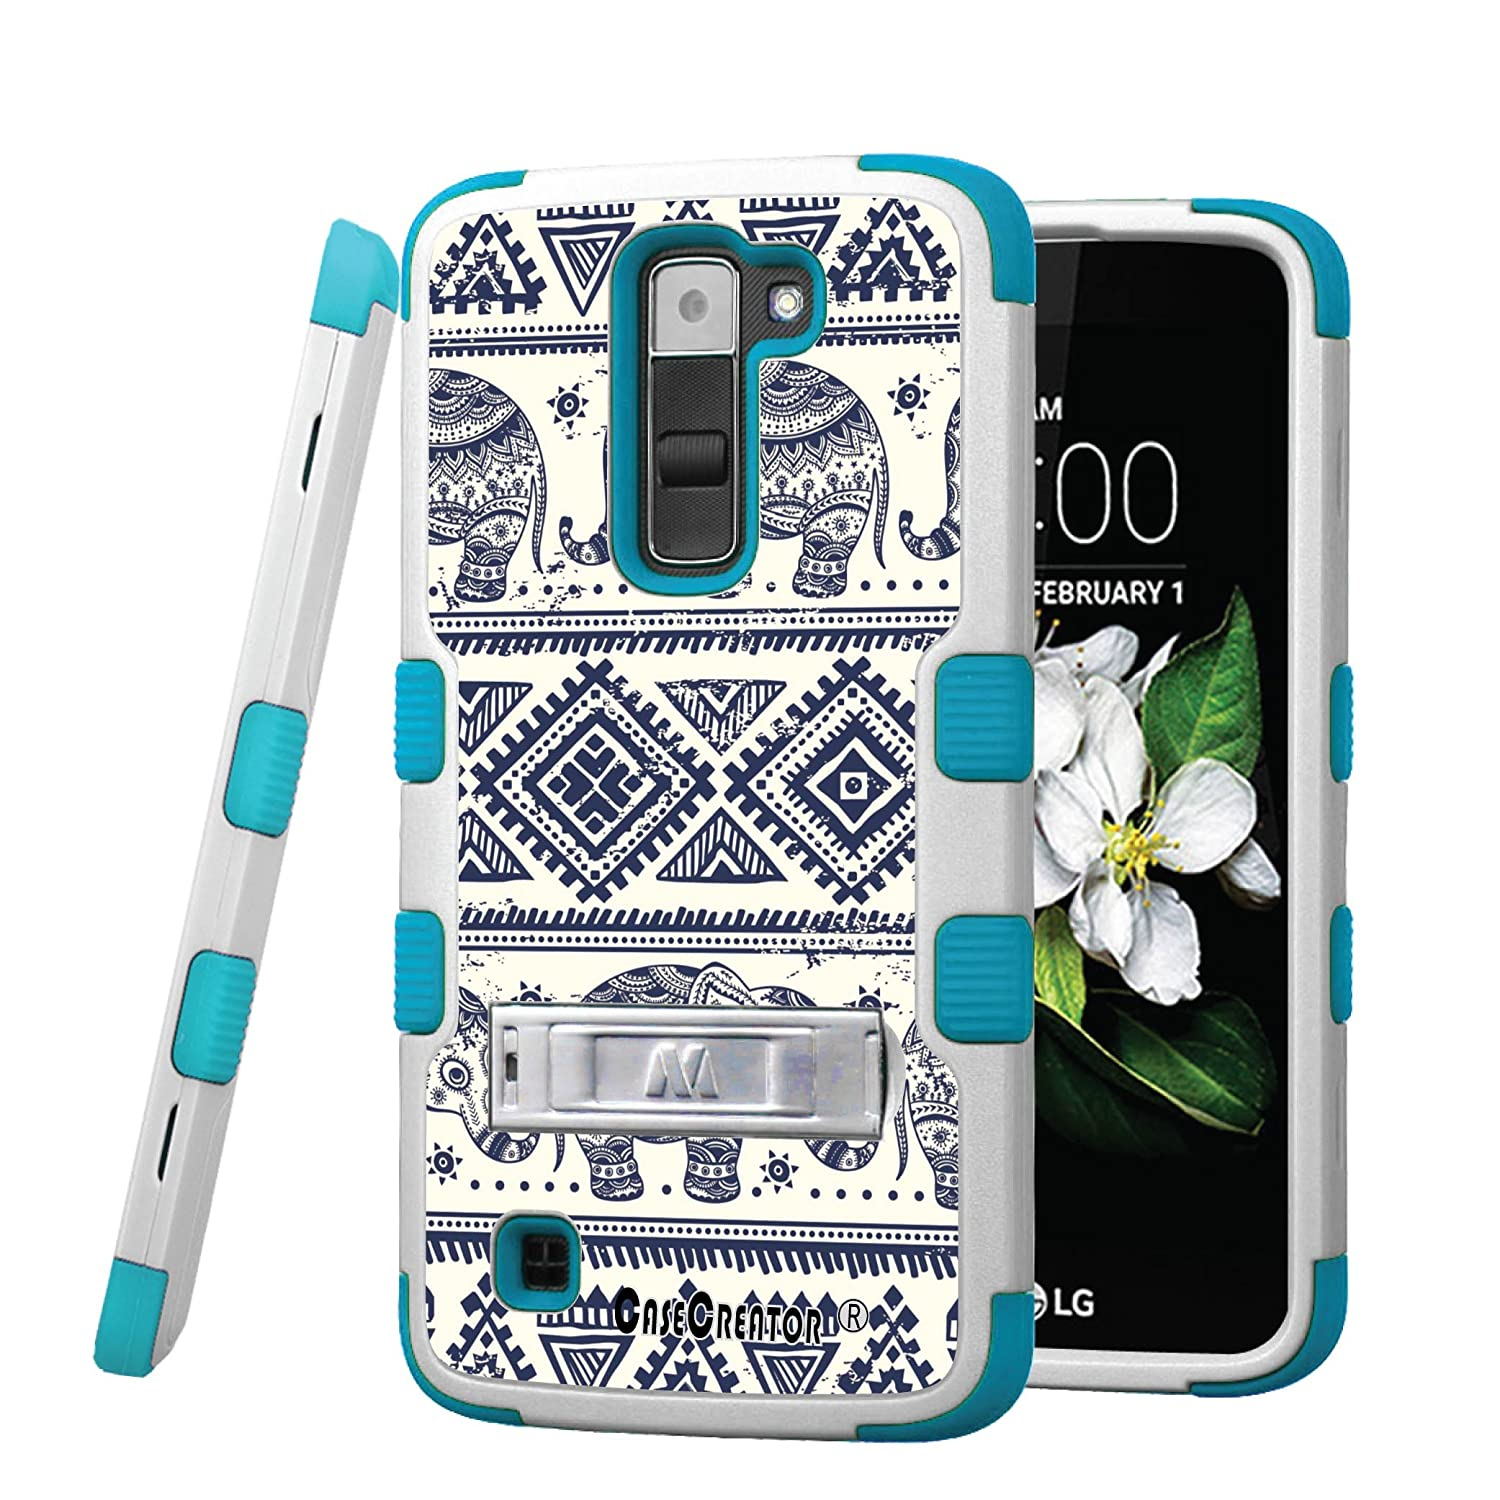 low cost 63794 6515a LG K7 Case, CASECREATOR[TM] For LG K7 / LG Tribute 5 (Sprint, MetroPCS,  Boost Mobile)~TUFF Hybrid Stand Rubber Hard Case Teal Blue White-Cluttered  ...